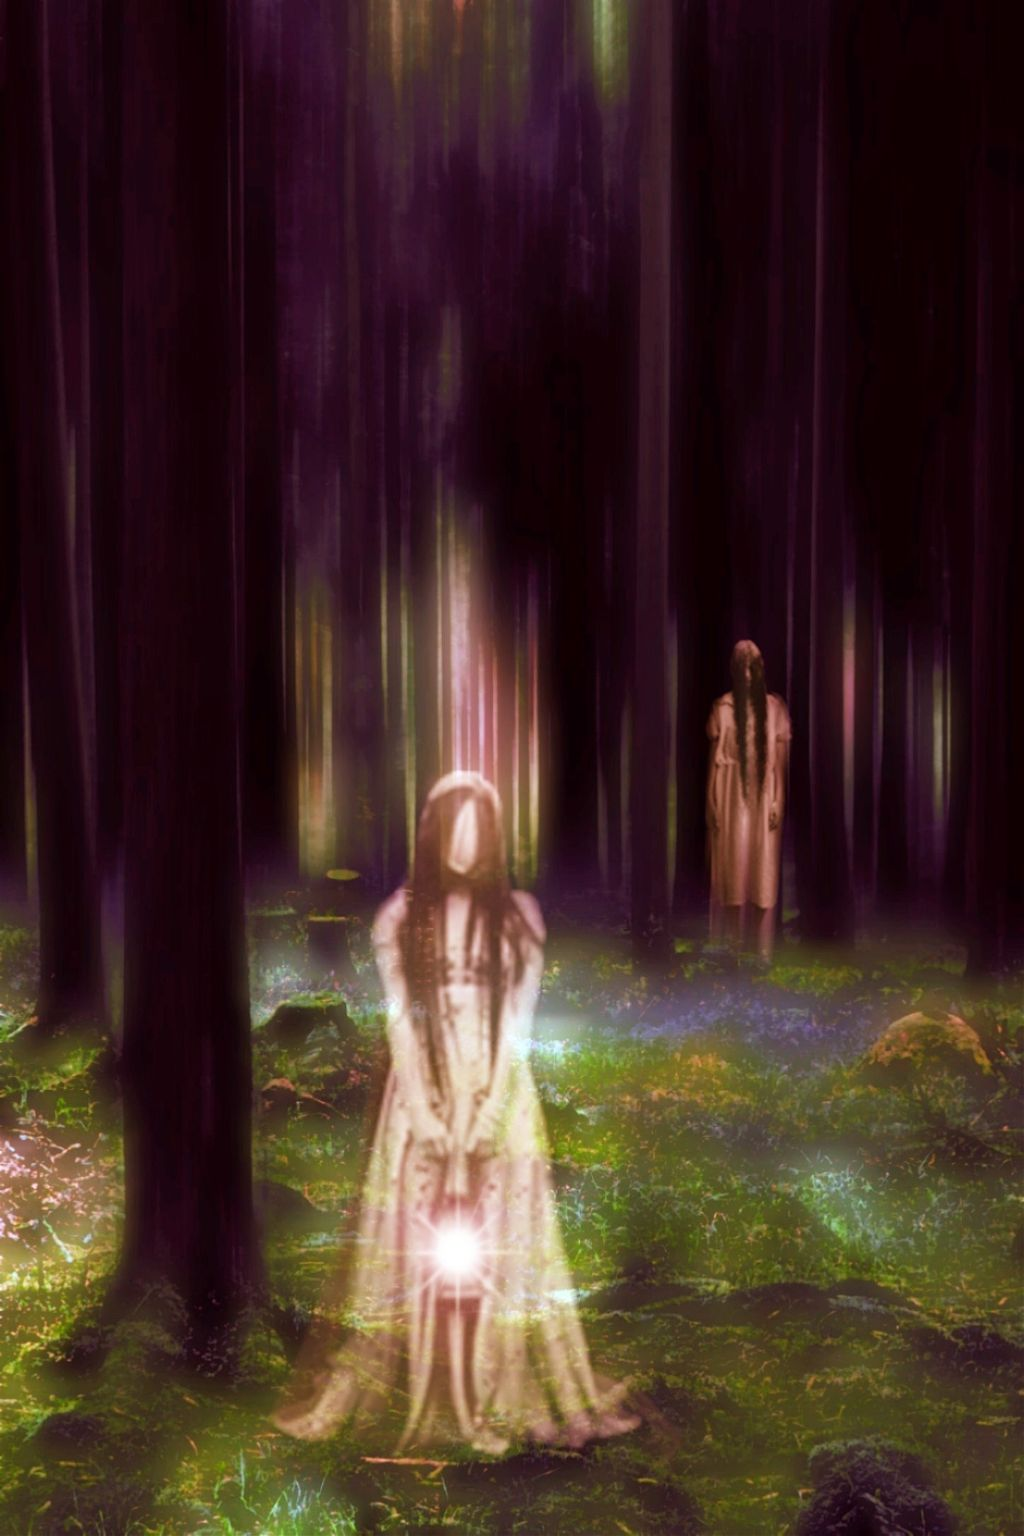 Original image from @an-dani gallery #vipshoutout #motiontool #surreal #ghost #forest #blureffect #madewithpicsart